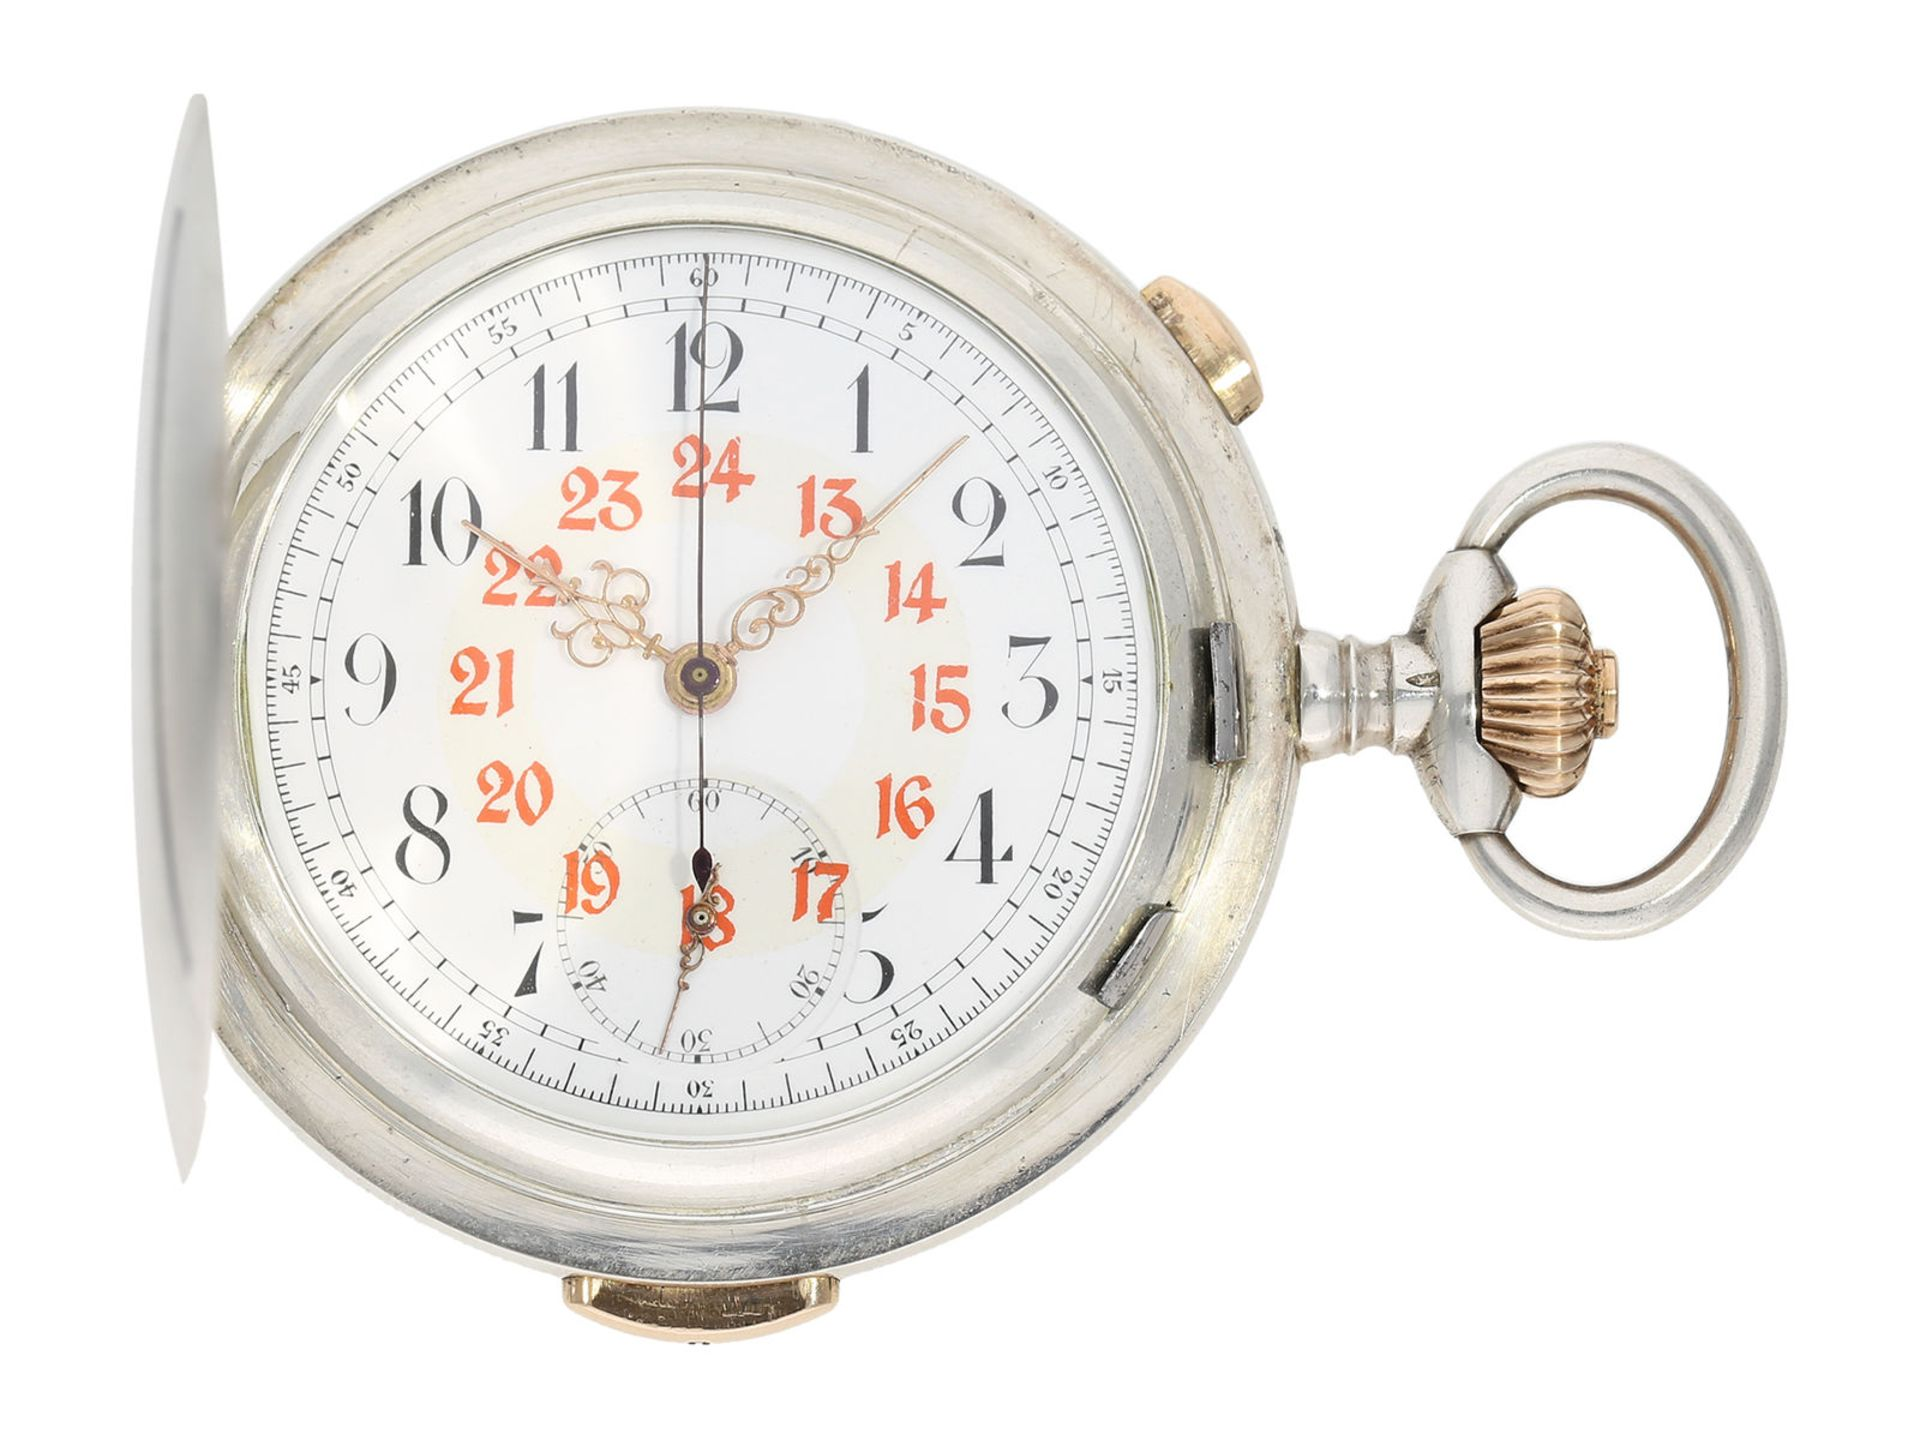 Pocket watch: high quality hunting case watch repeater with chronograph, Patent Swiss 13944 (